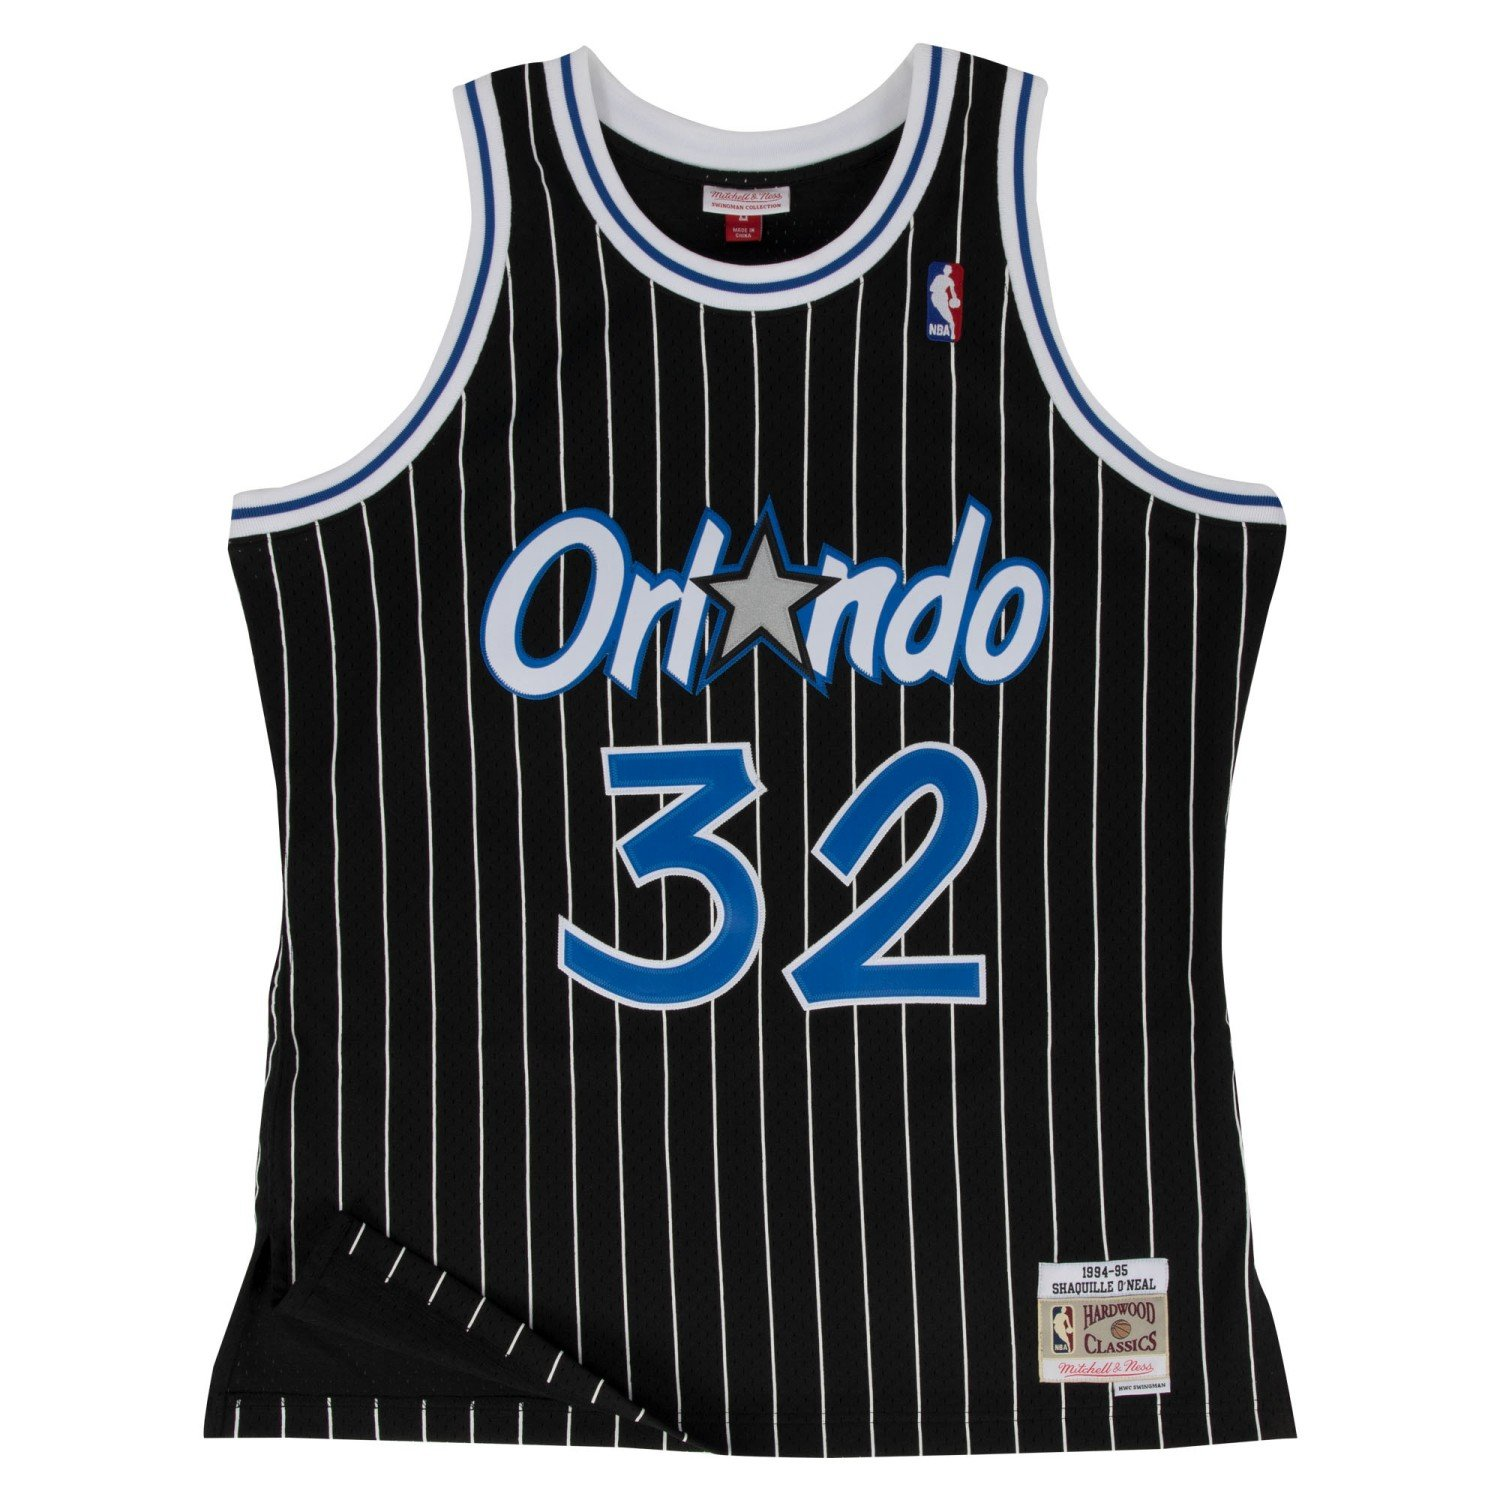 7ee221f1eb2 Amazon.com  Mitchell   Ness Orlando Magic Shaquille O Neal Black Swingman  Jersey  Clothing